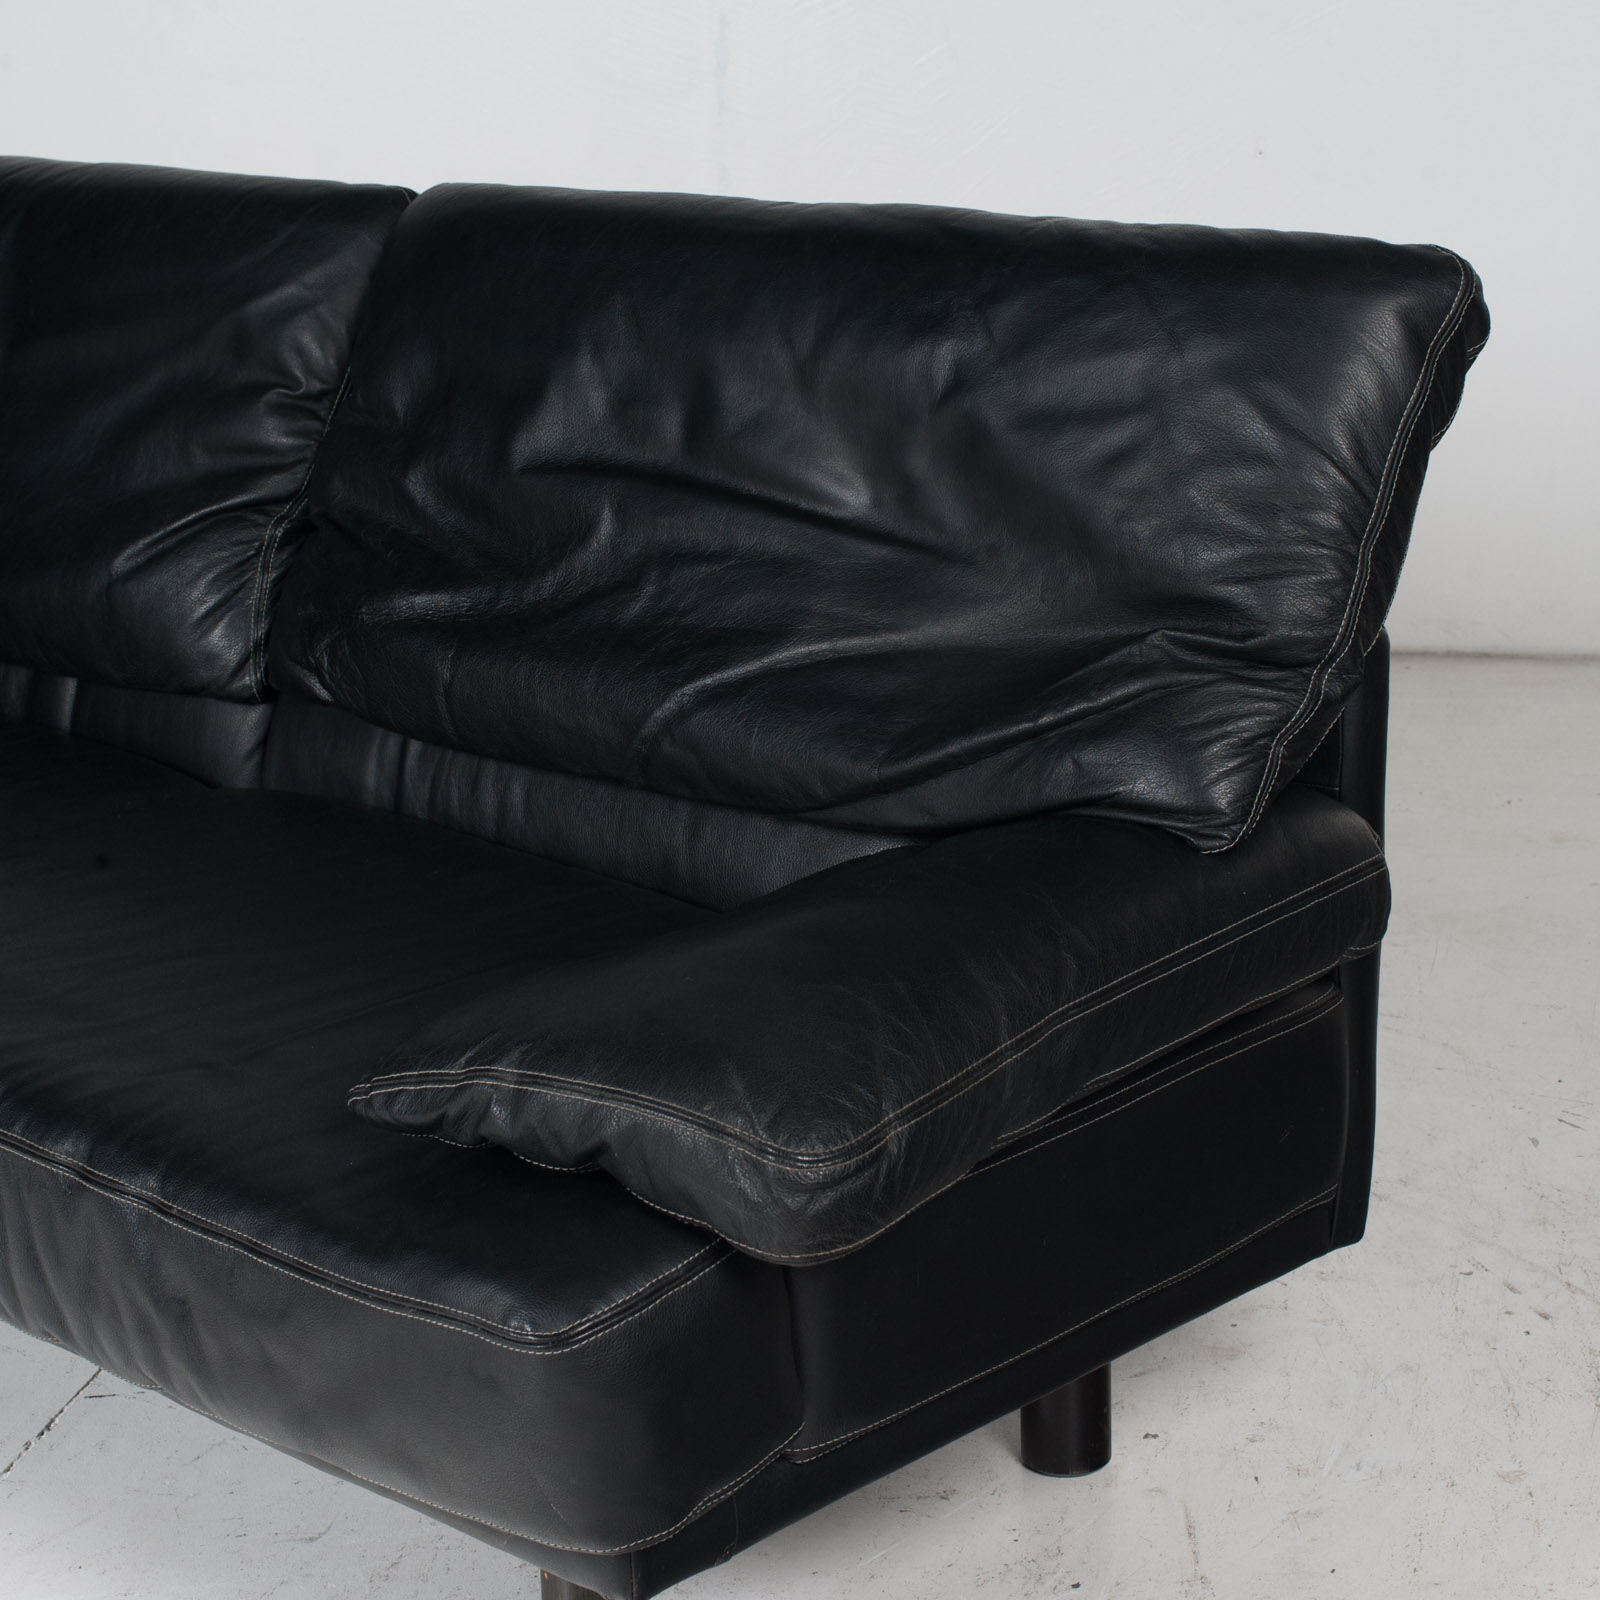 2 Seat Sofa In The Style Of Alanda By Paolo Piva For B&b Italia In Black Leather, 1980s, Italy It 7